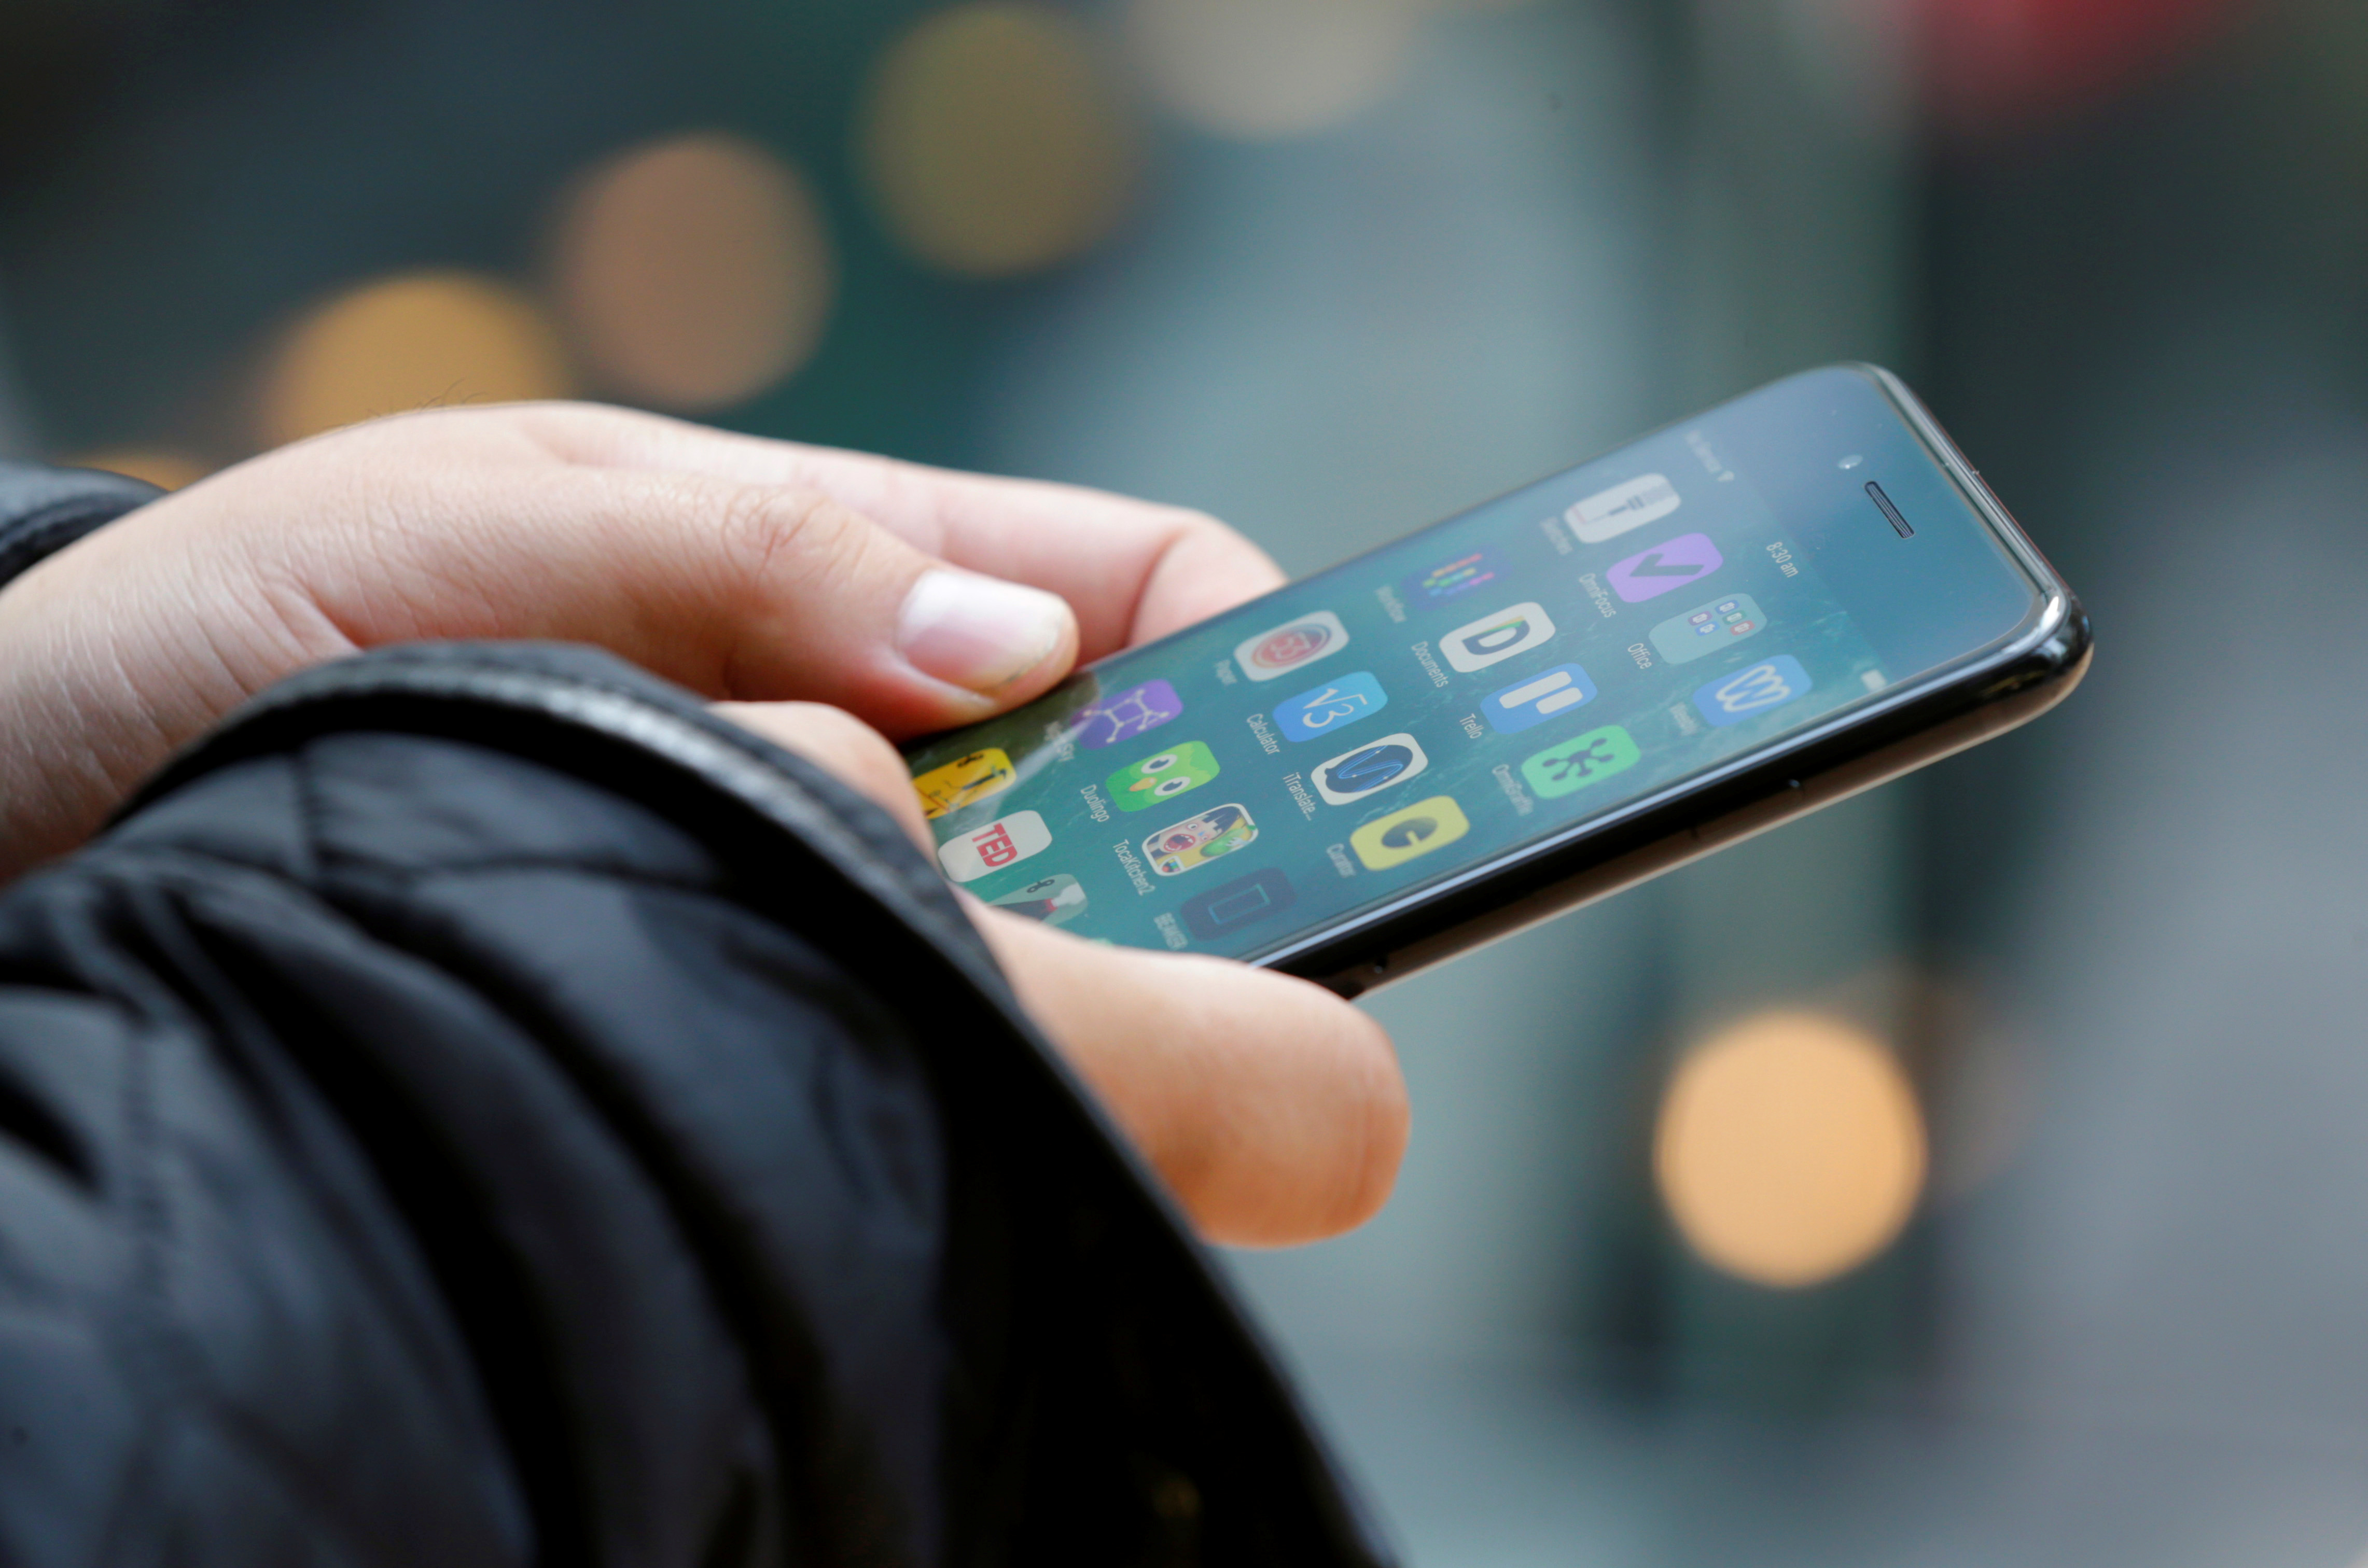 Fintech apps bring stability to stressed families